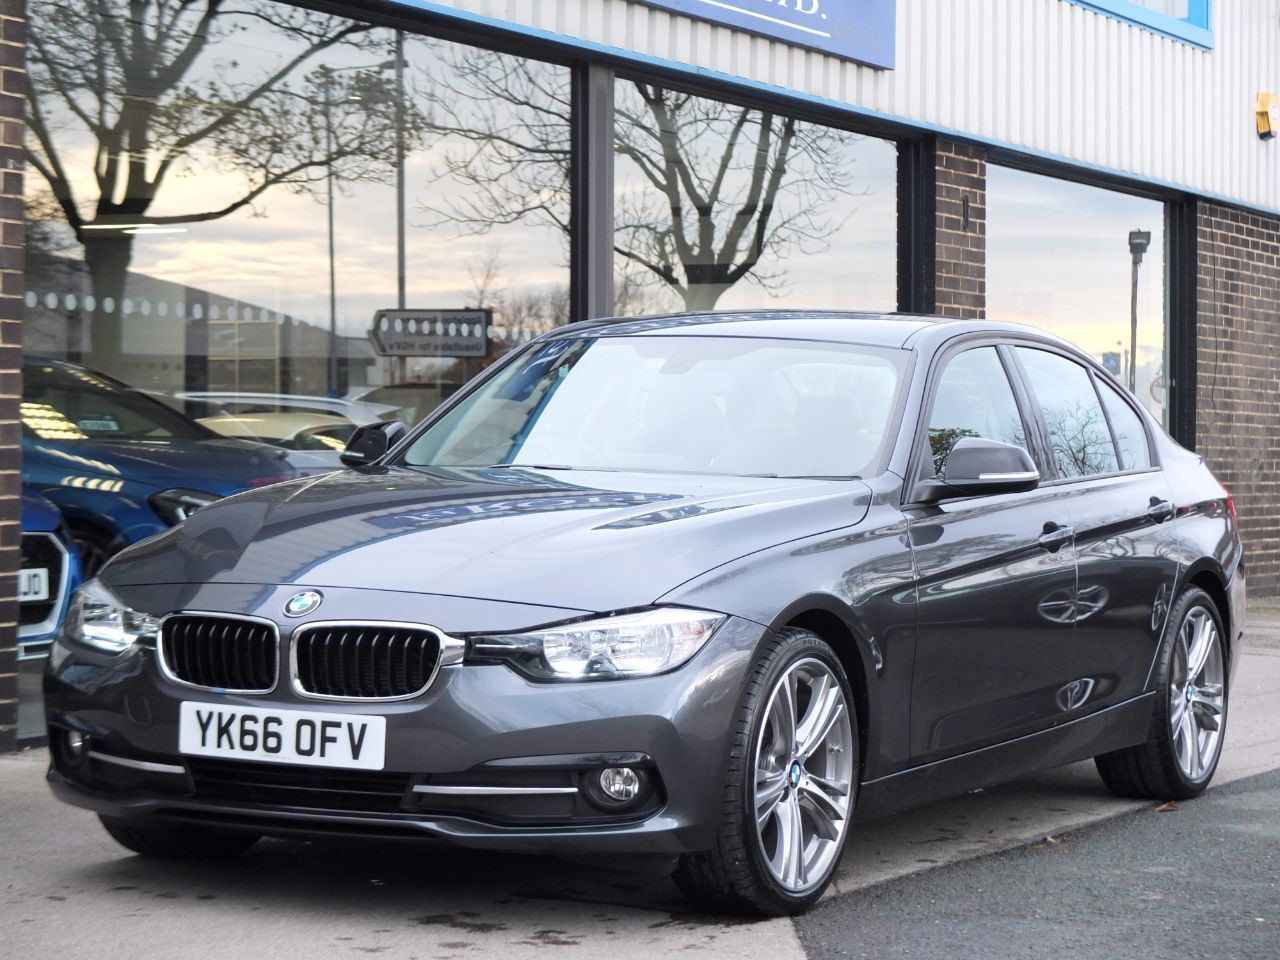 BMW 3 Series 2.0 320d Efficient Dynamics Sport Auto Saloon Diesel Mineral Grey MetallicBMW 3 Series 2.0 320d Efficient Dynamics Sport Auto Saloon Diesel Mineral Grey Metallic at fa Roper Ltd Bradford